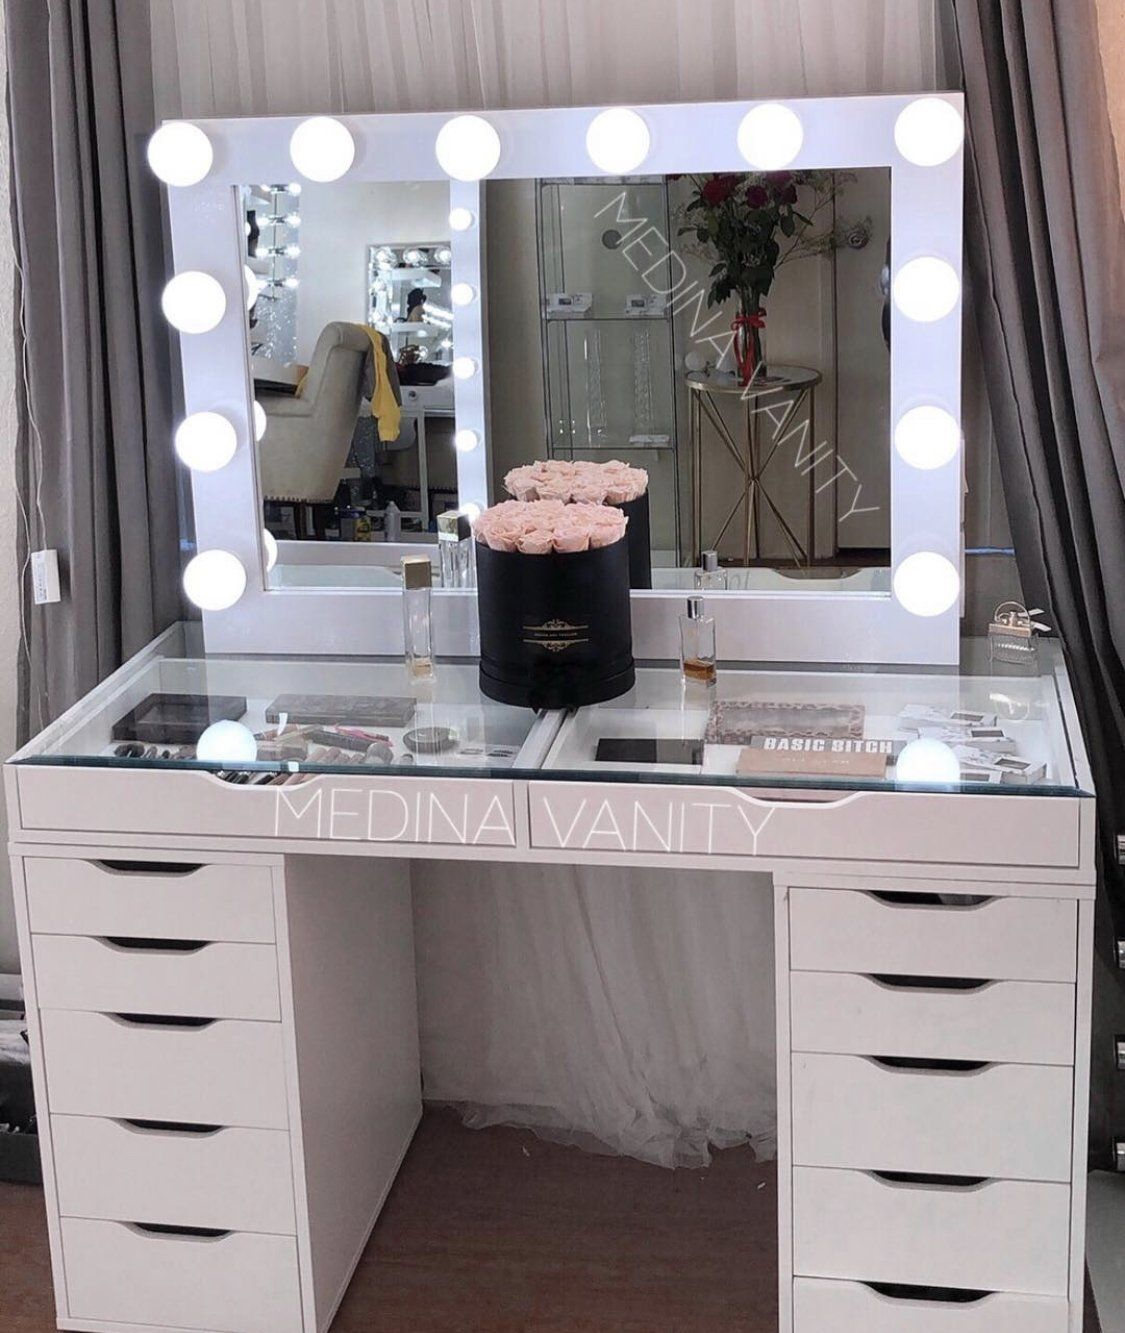 Hollywood Dream® Vanity Mirror Medina Vanity